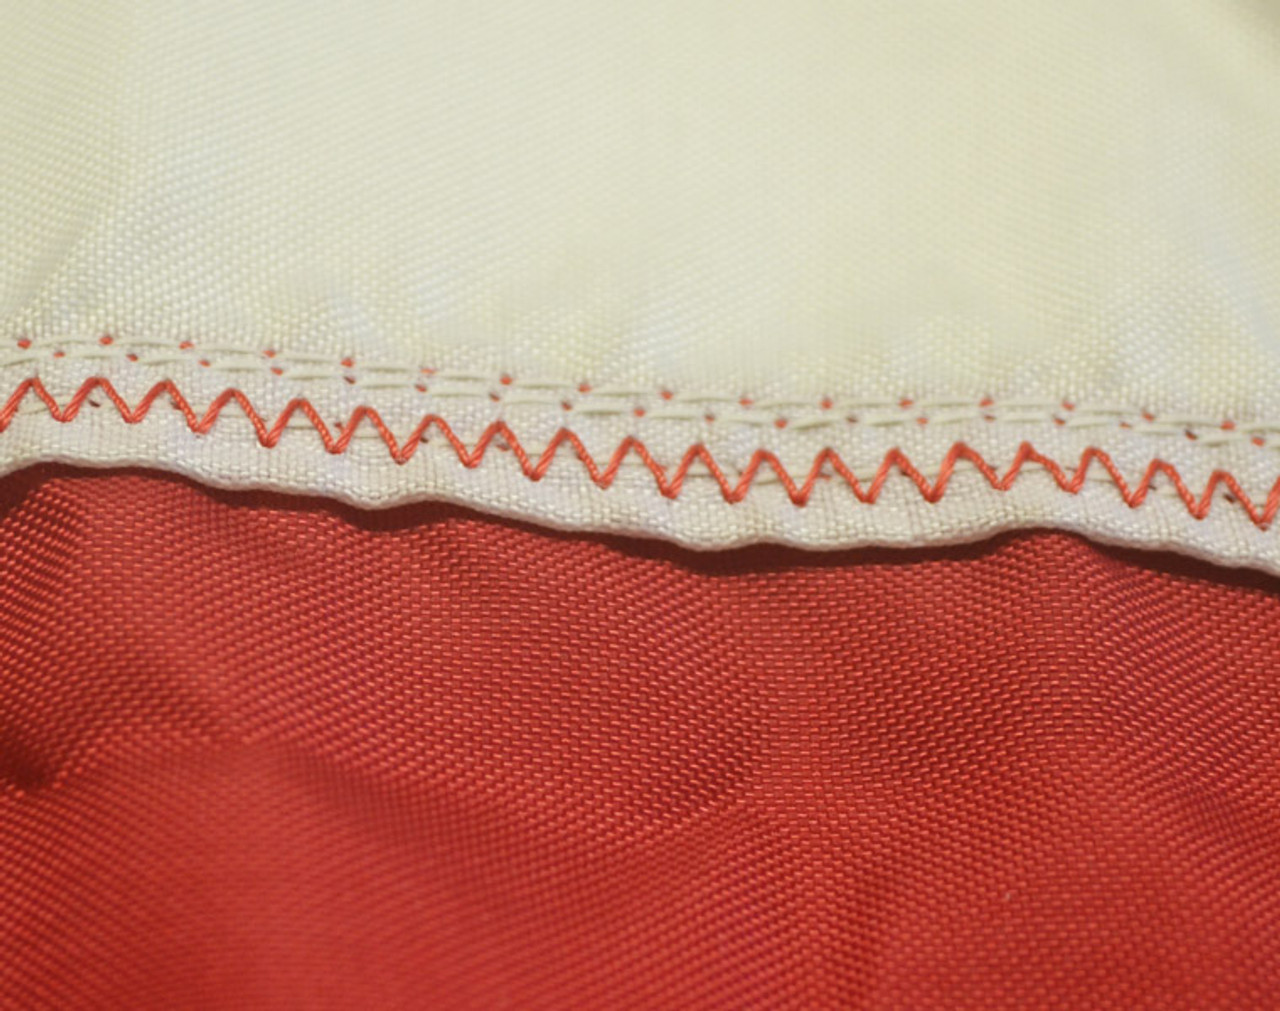 Our Special Zig Zag Stitching Using Our Extra Strength Thread. This is added to each Red and White Stripe to Prevent Tearing.